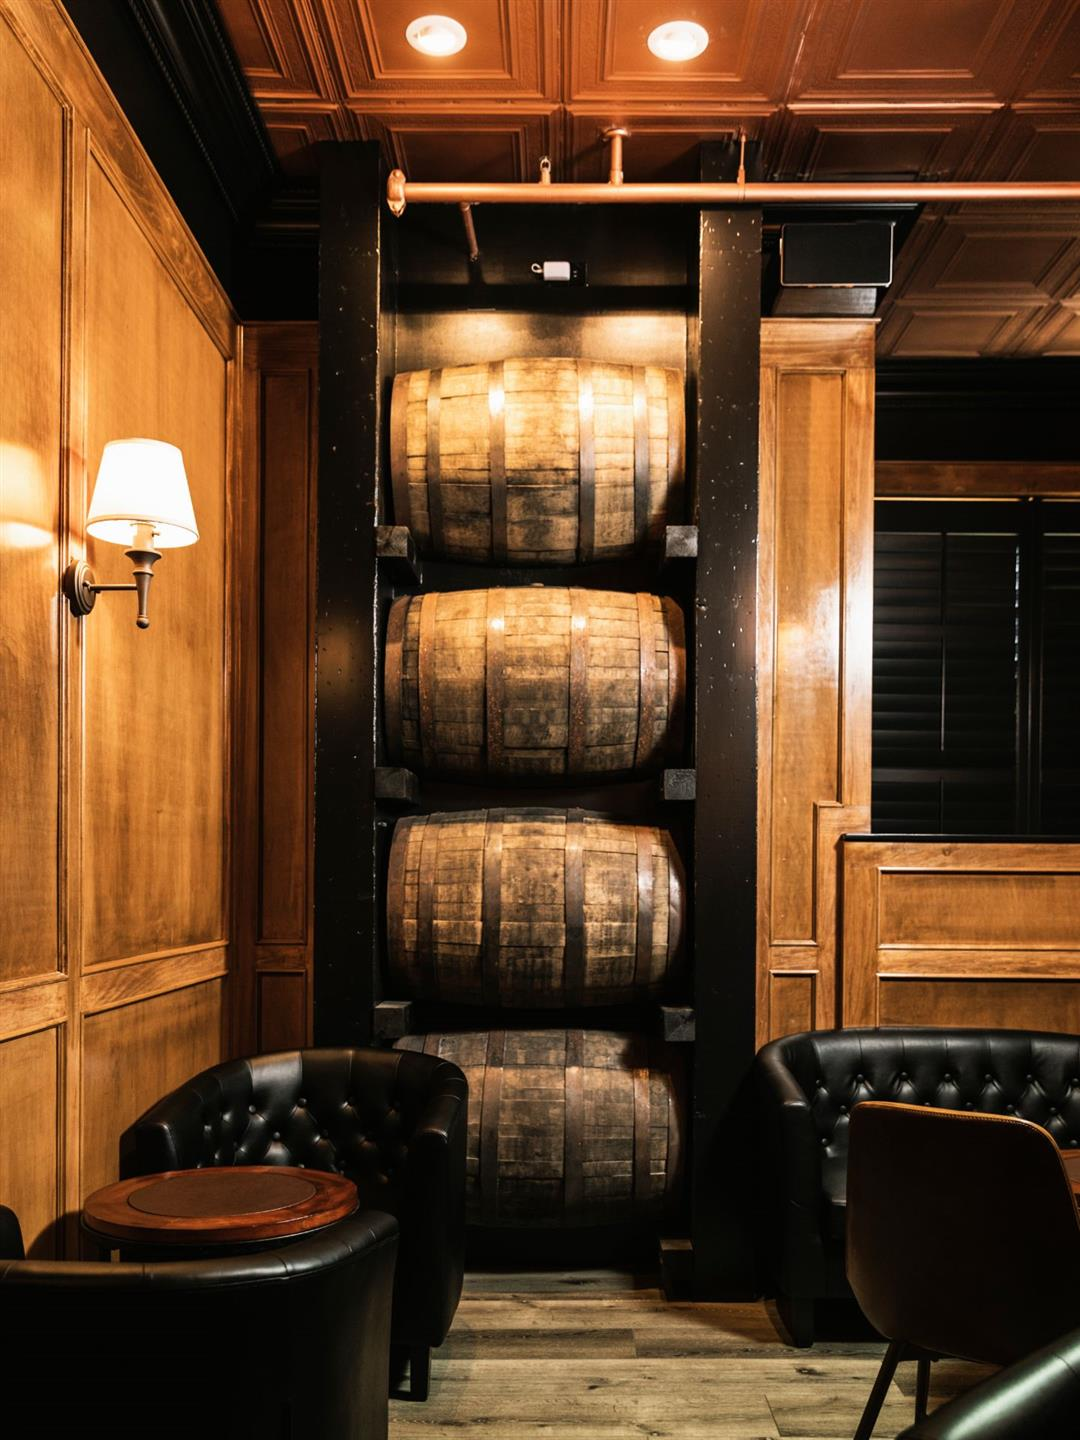 Wooden whiskey barrels stacked up in a corner beside leather chairs